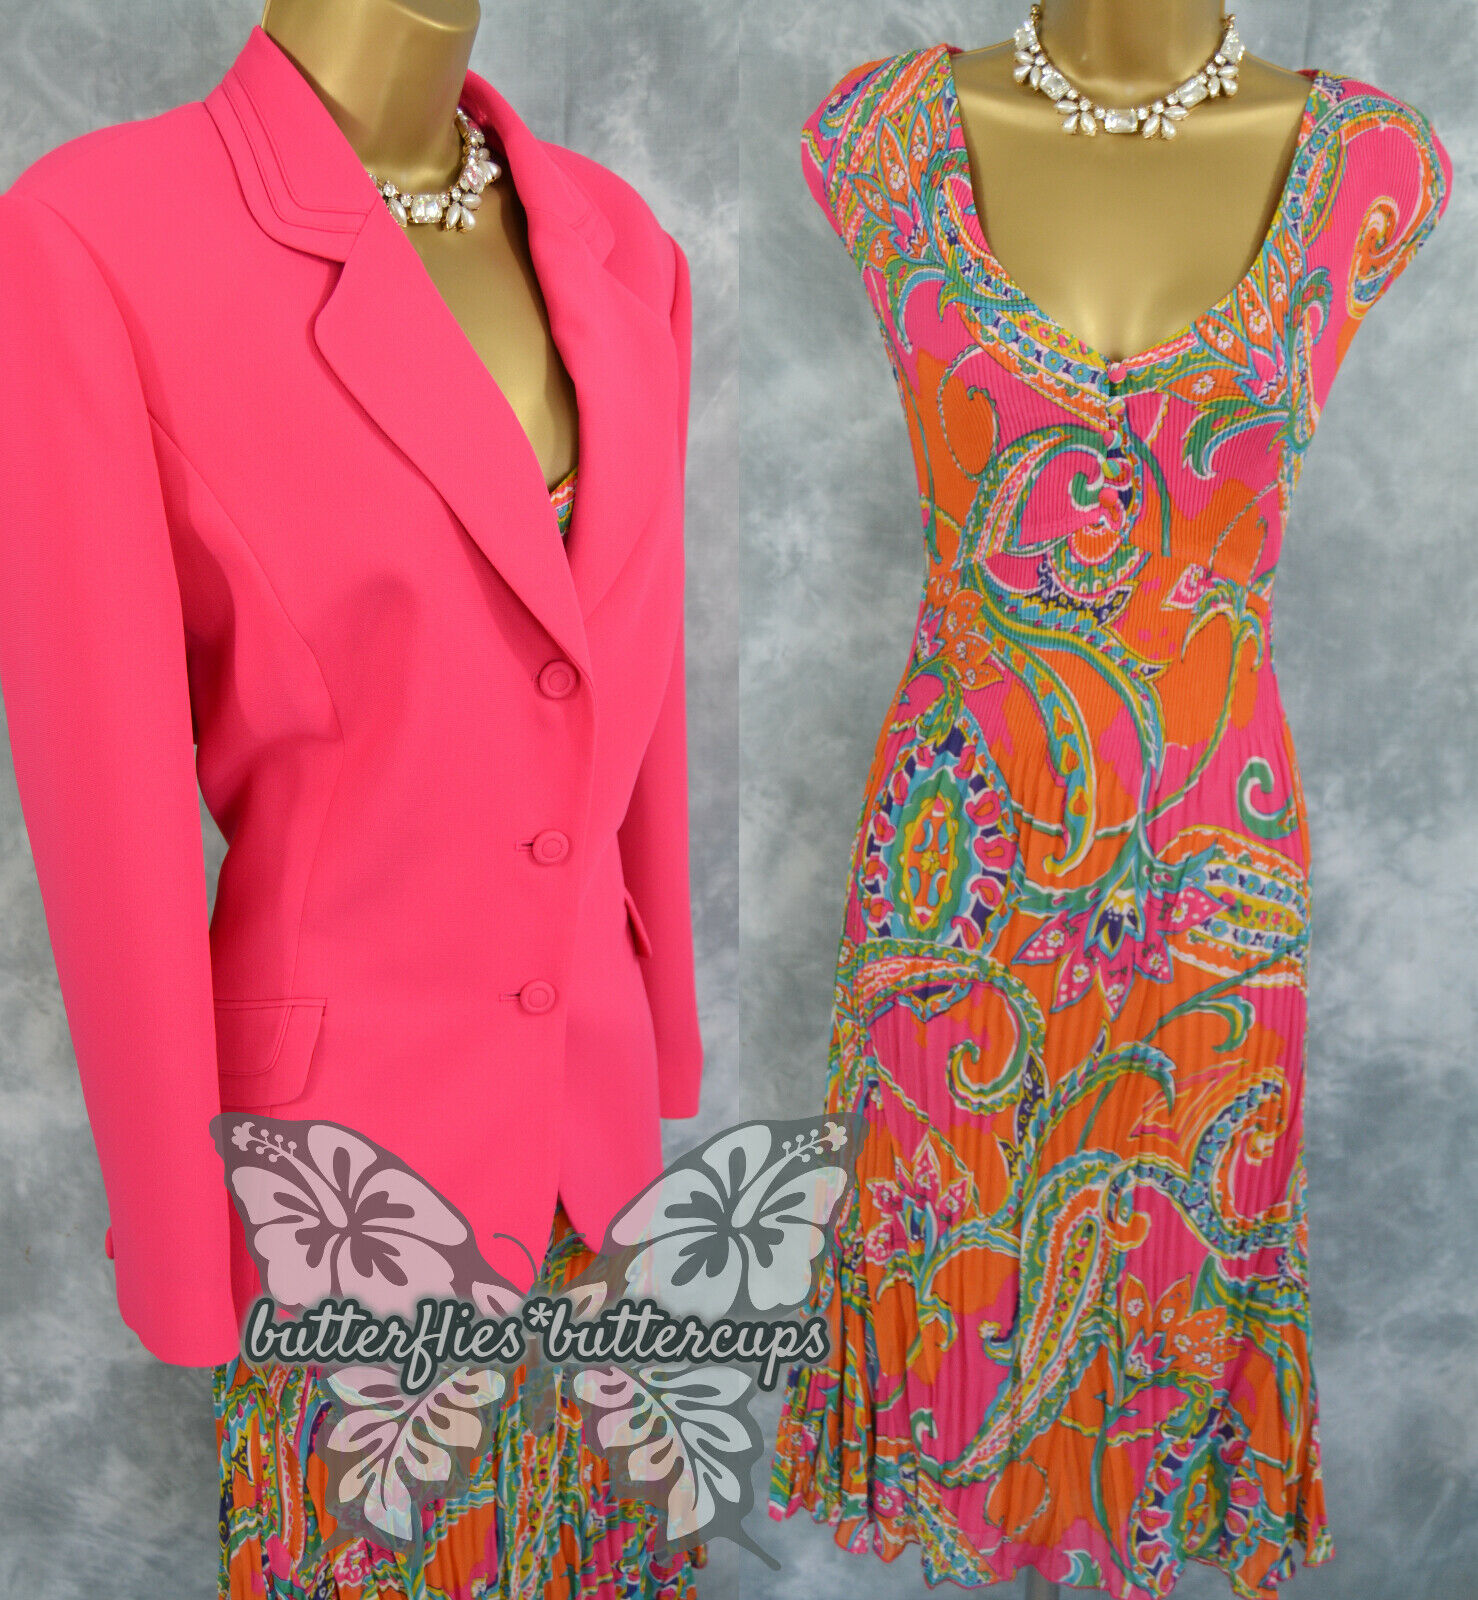 ~ JACQUES VERT & EAST~ Size 18 Pink Dress and Jacket Suit Mother of the Bride